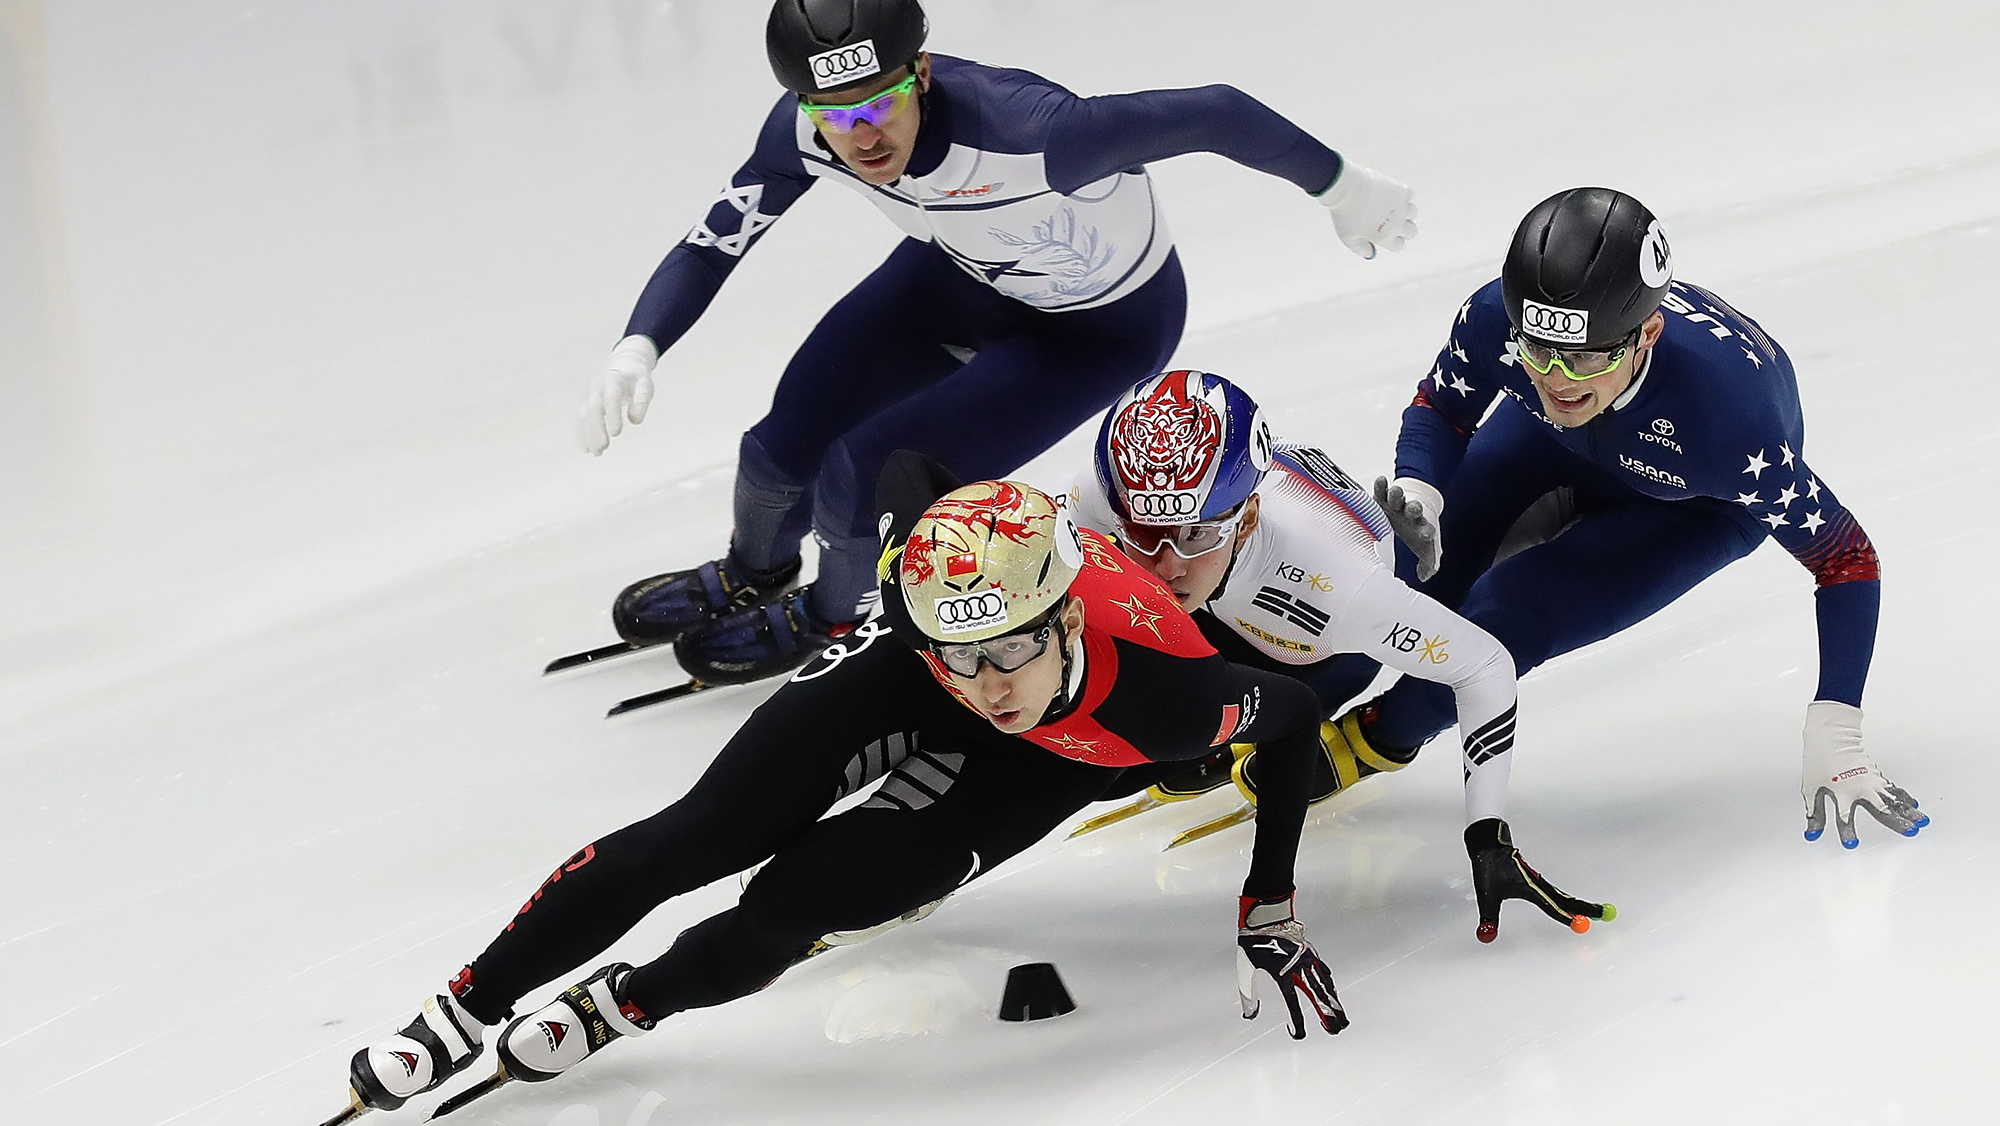 Hockey diplomacy: North-South Korean team loses to Sweden